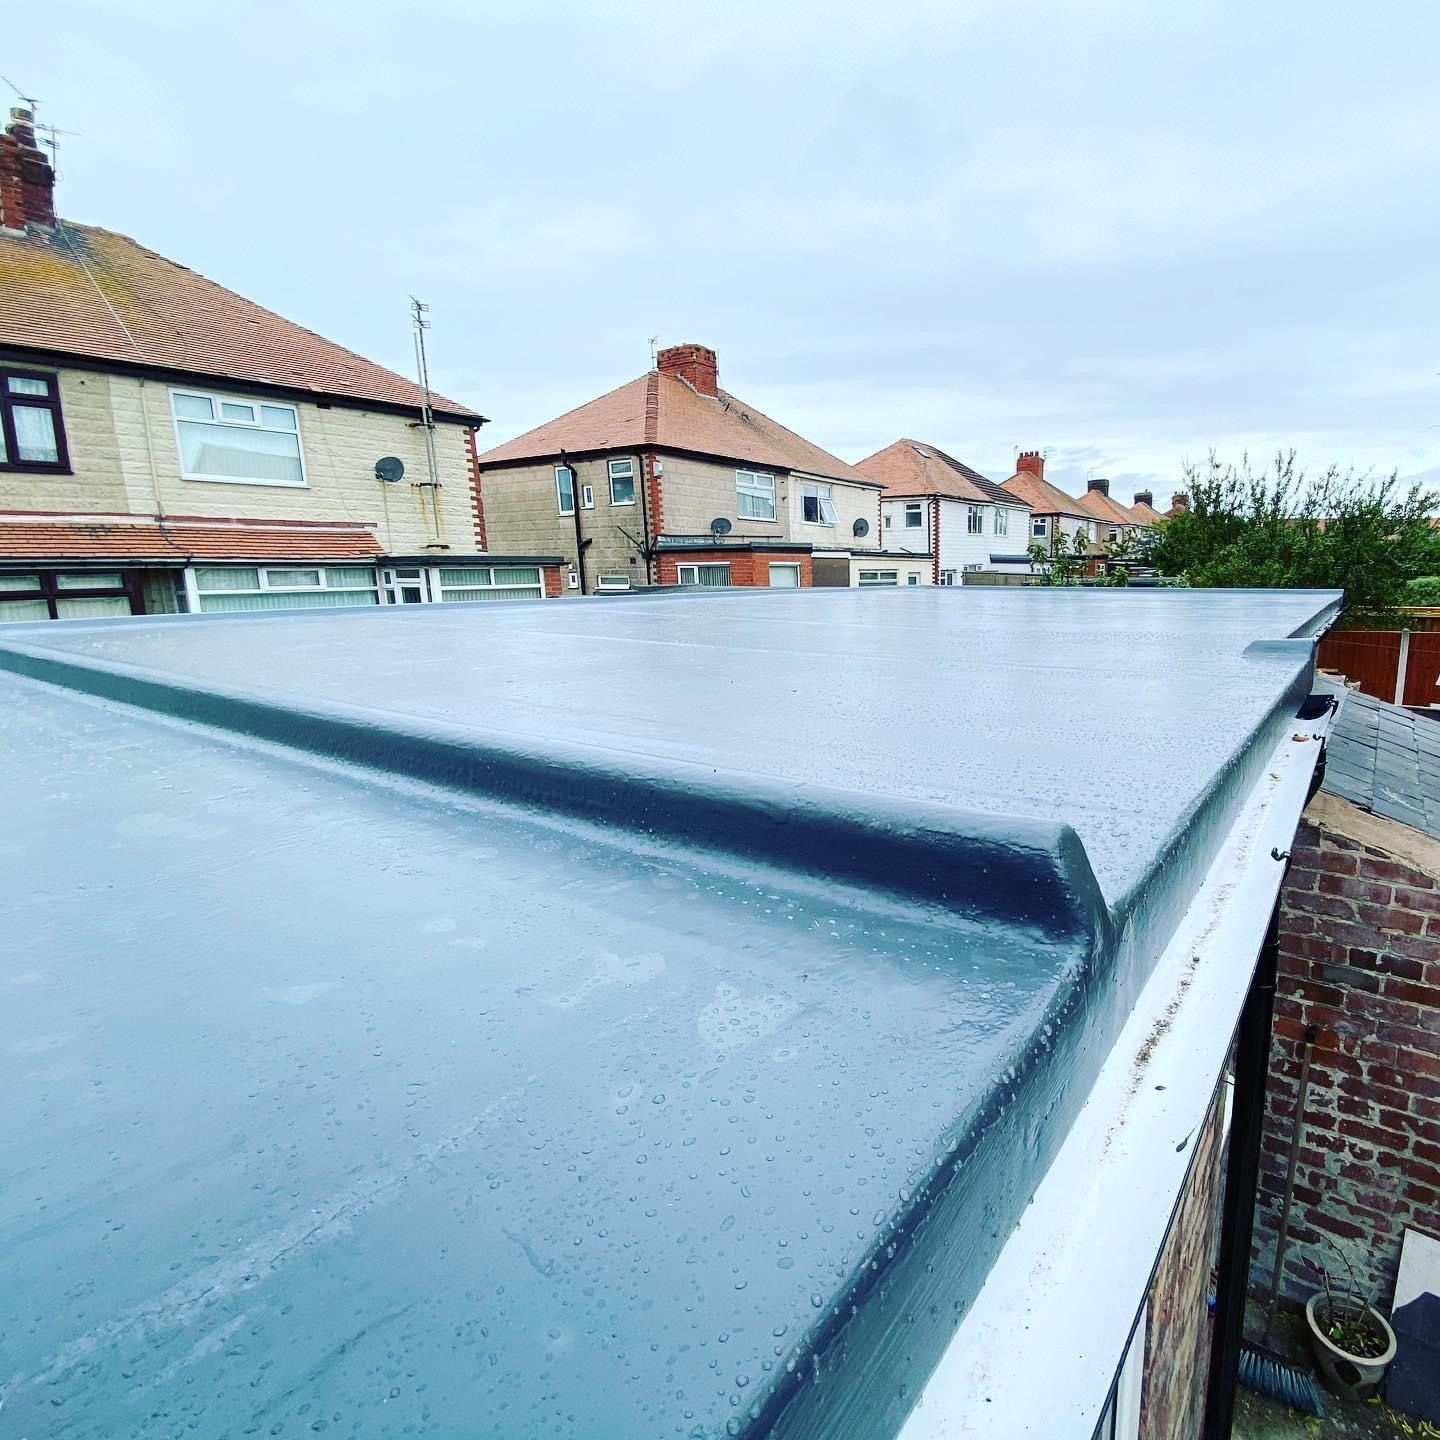 Fibreglass Grp Detailing On New Flat Roof In South Shore Blackpool In 2020 Flat Roof Replacement Flat Roof Roofer